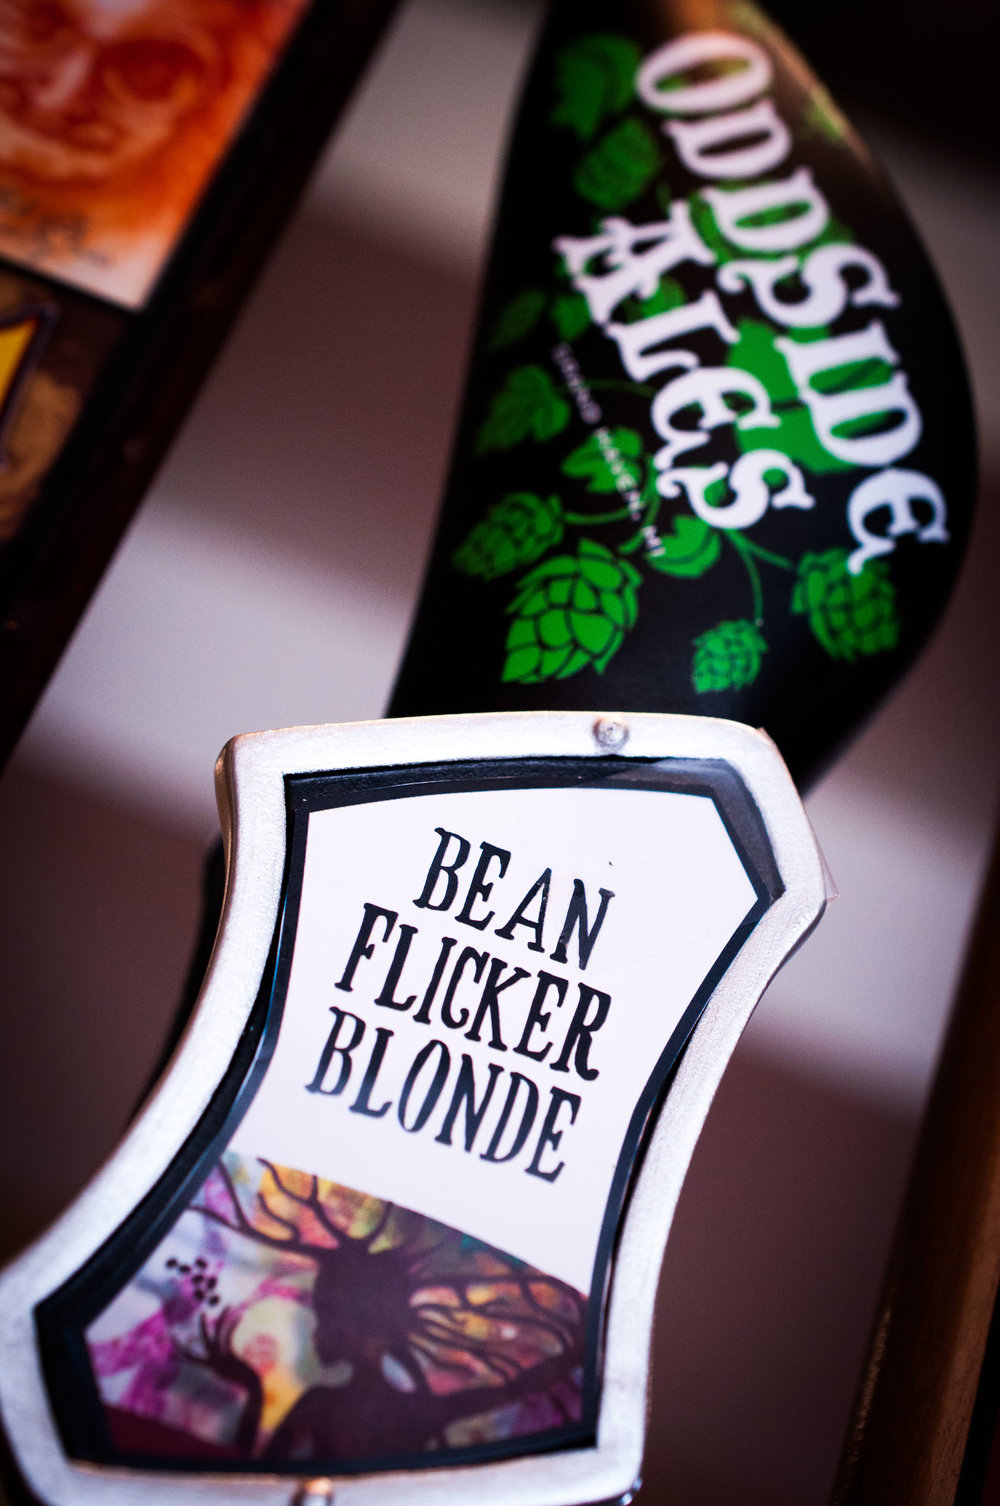 Bean Flicker Blonde.jpg